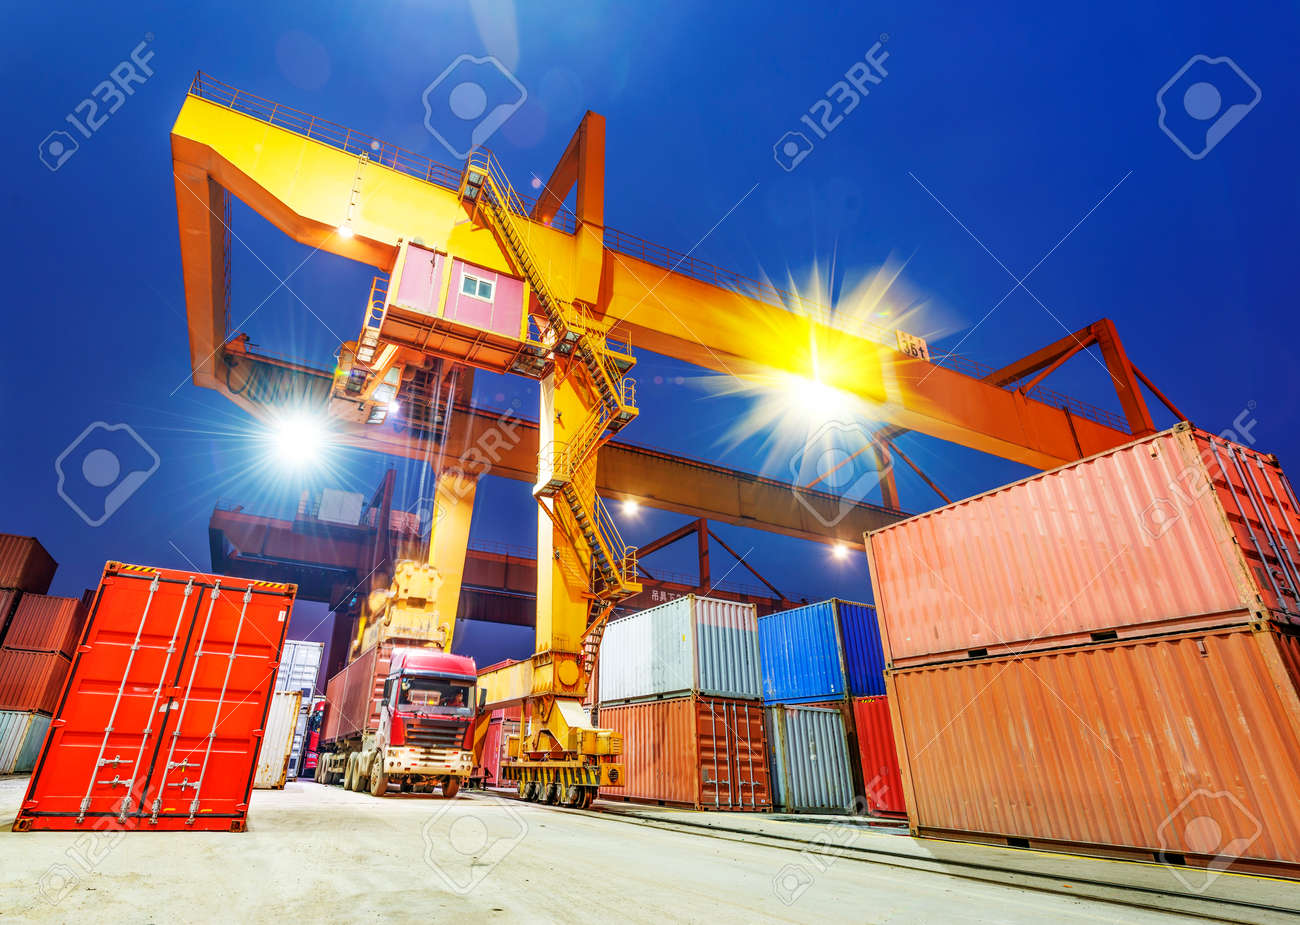 industrial port with containers - 35771797